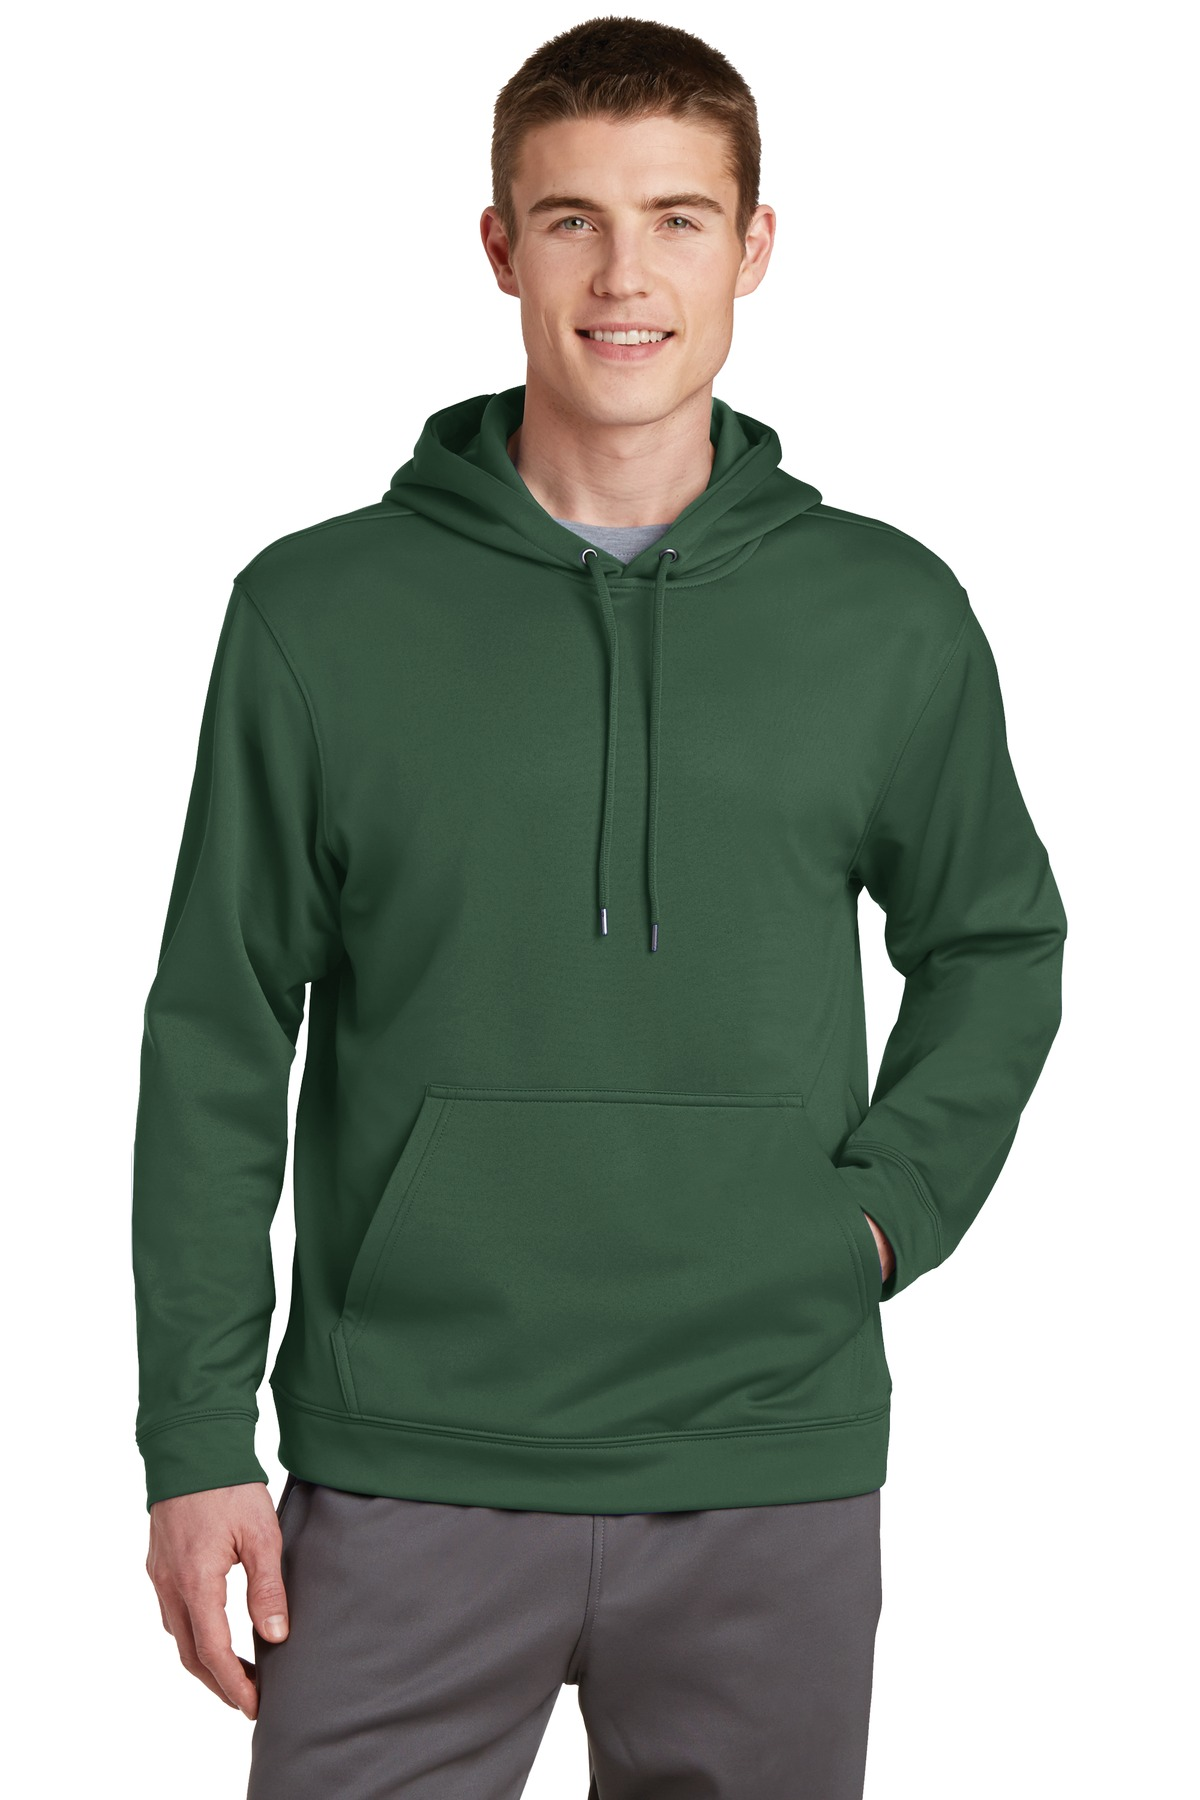 Sport-Tek ®  Sport-Wick ®  Fleece Hooded Pullover.  F244 - Forest Green